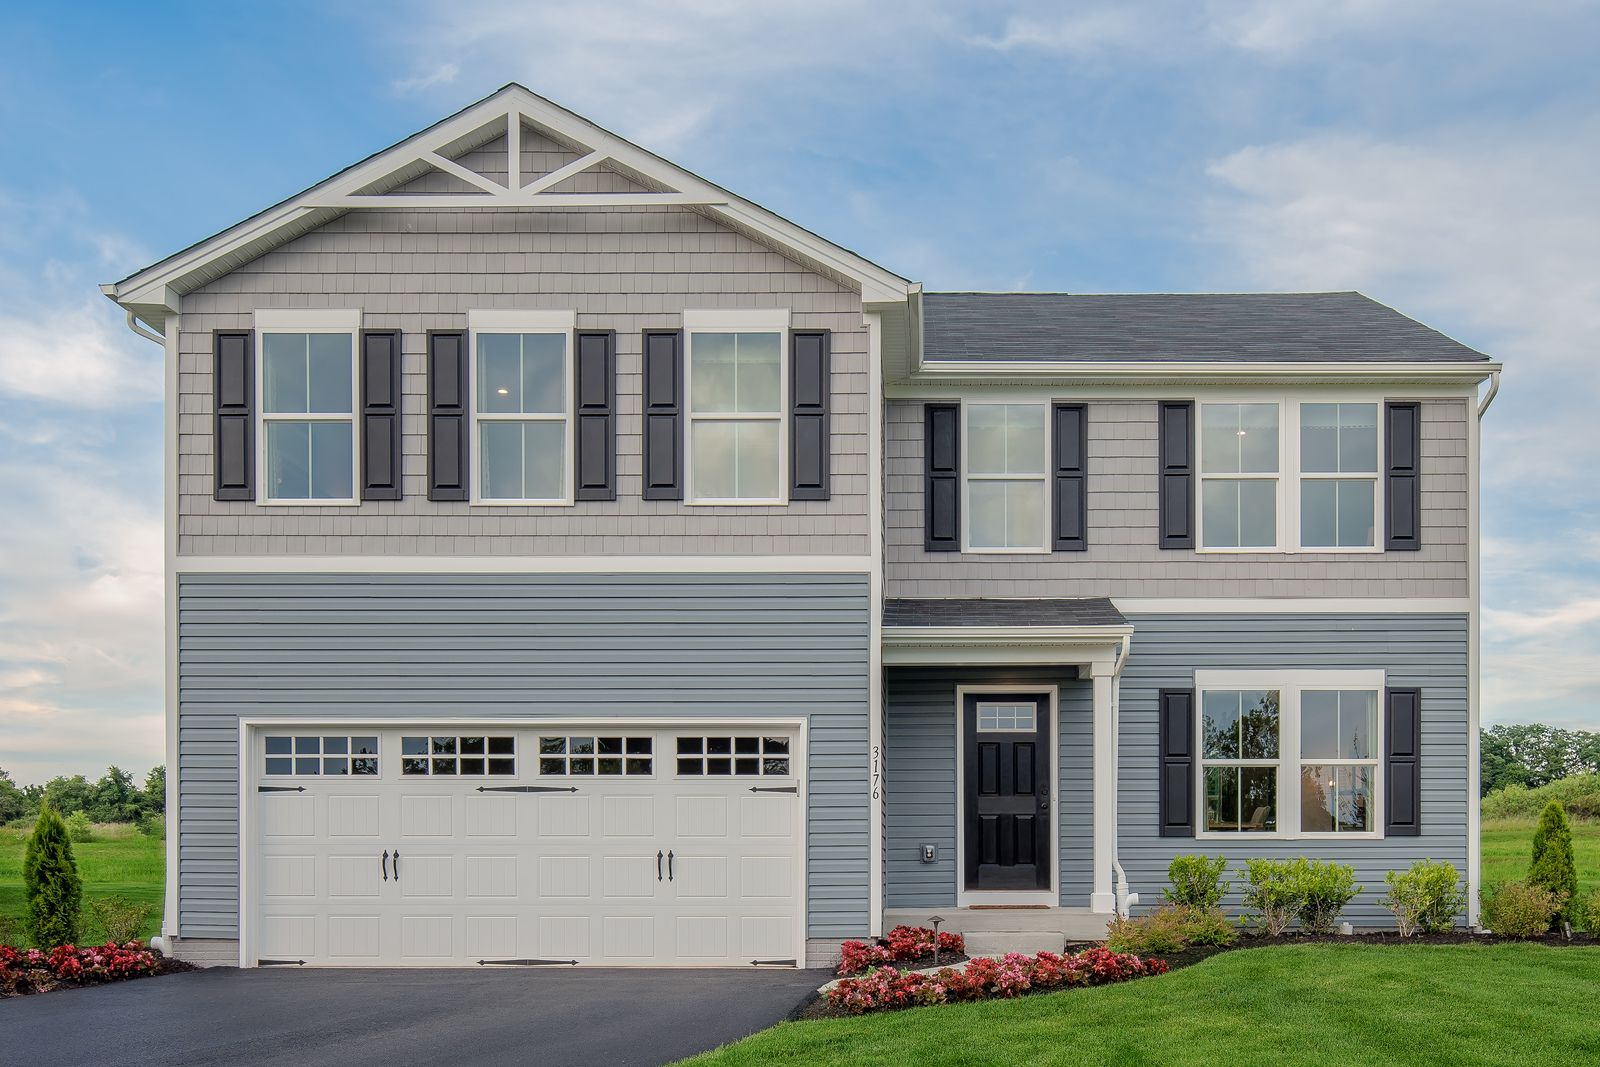 HOPYARD FARM - AFFORDABLE HOMES IN THIS AMENITY-FILLED COMMUNITY!